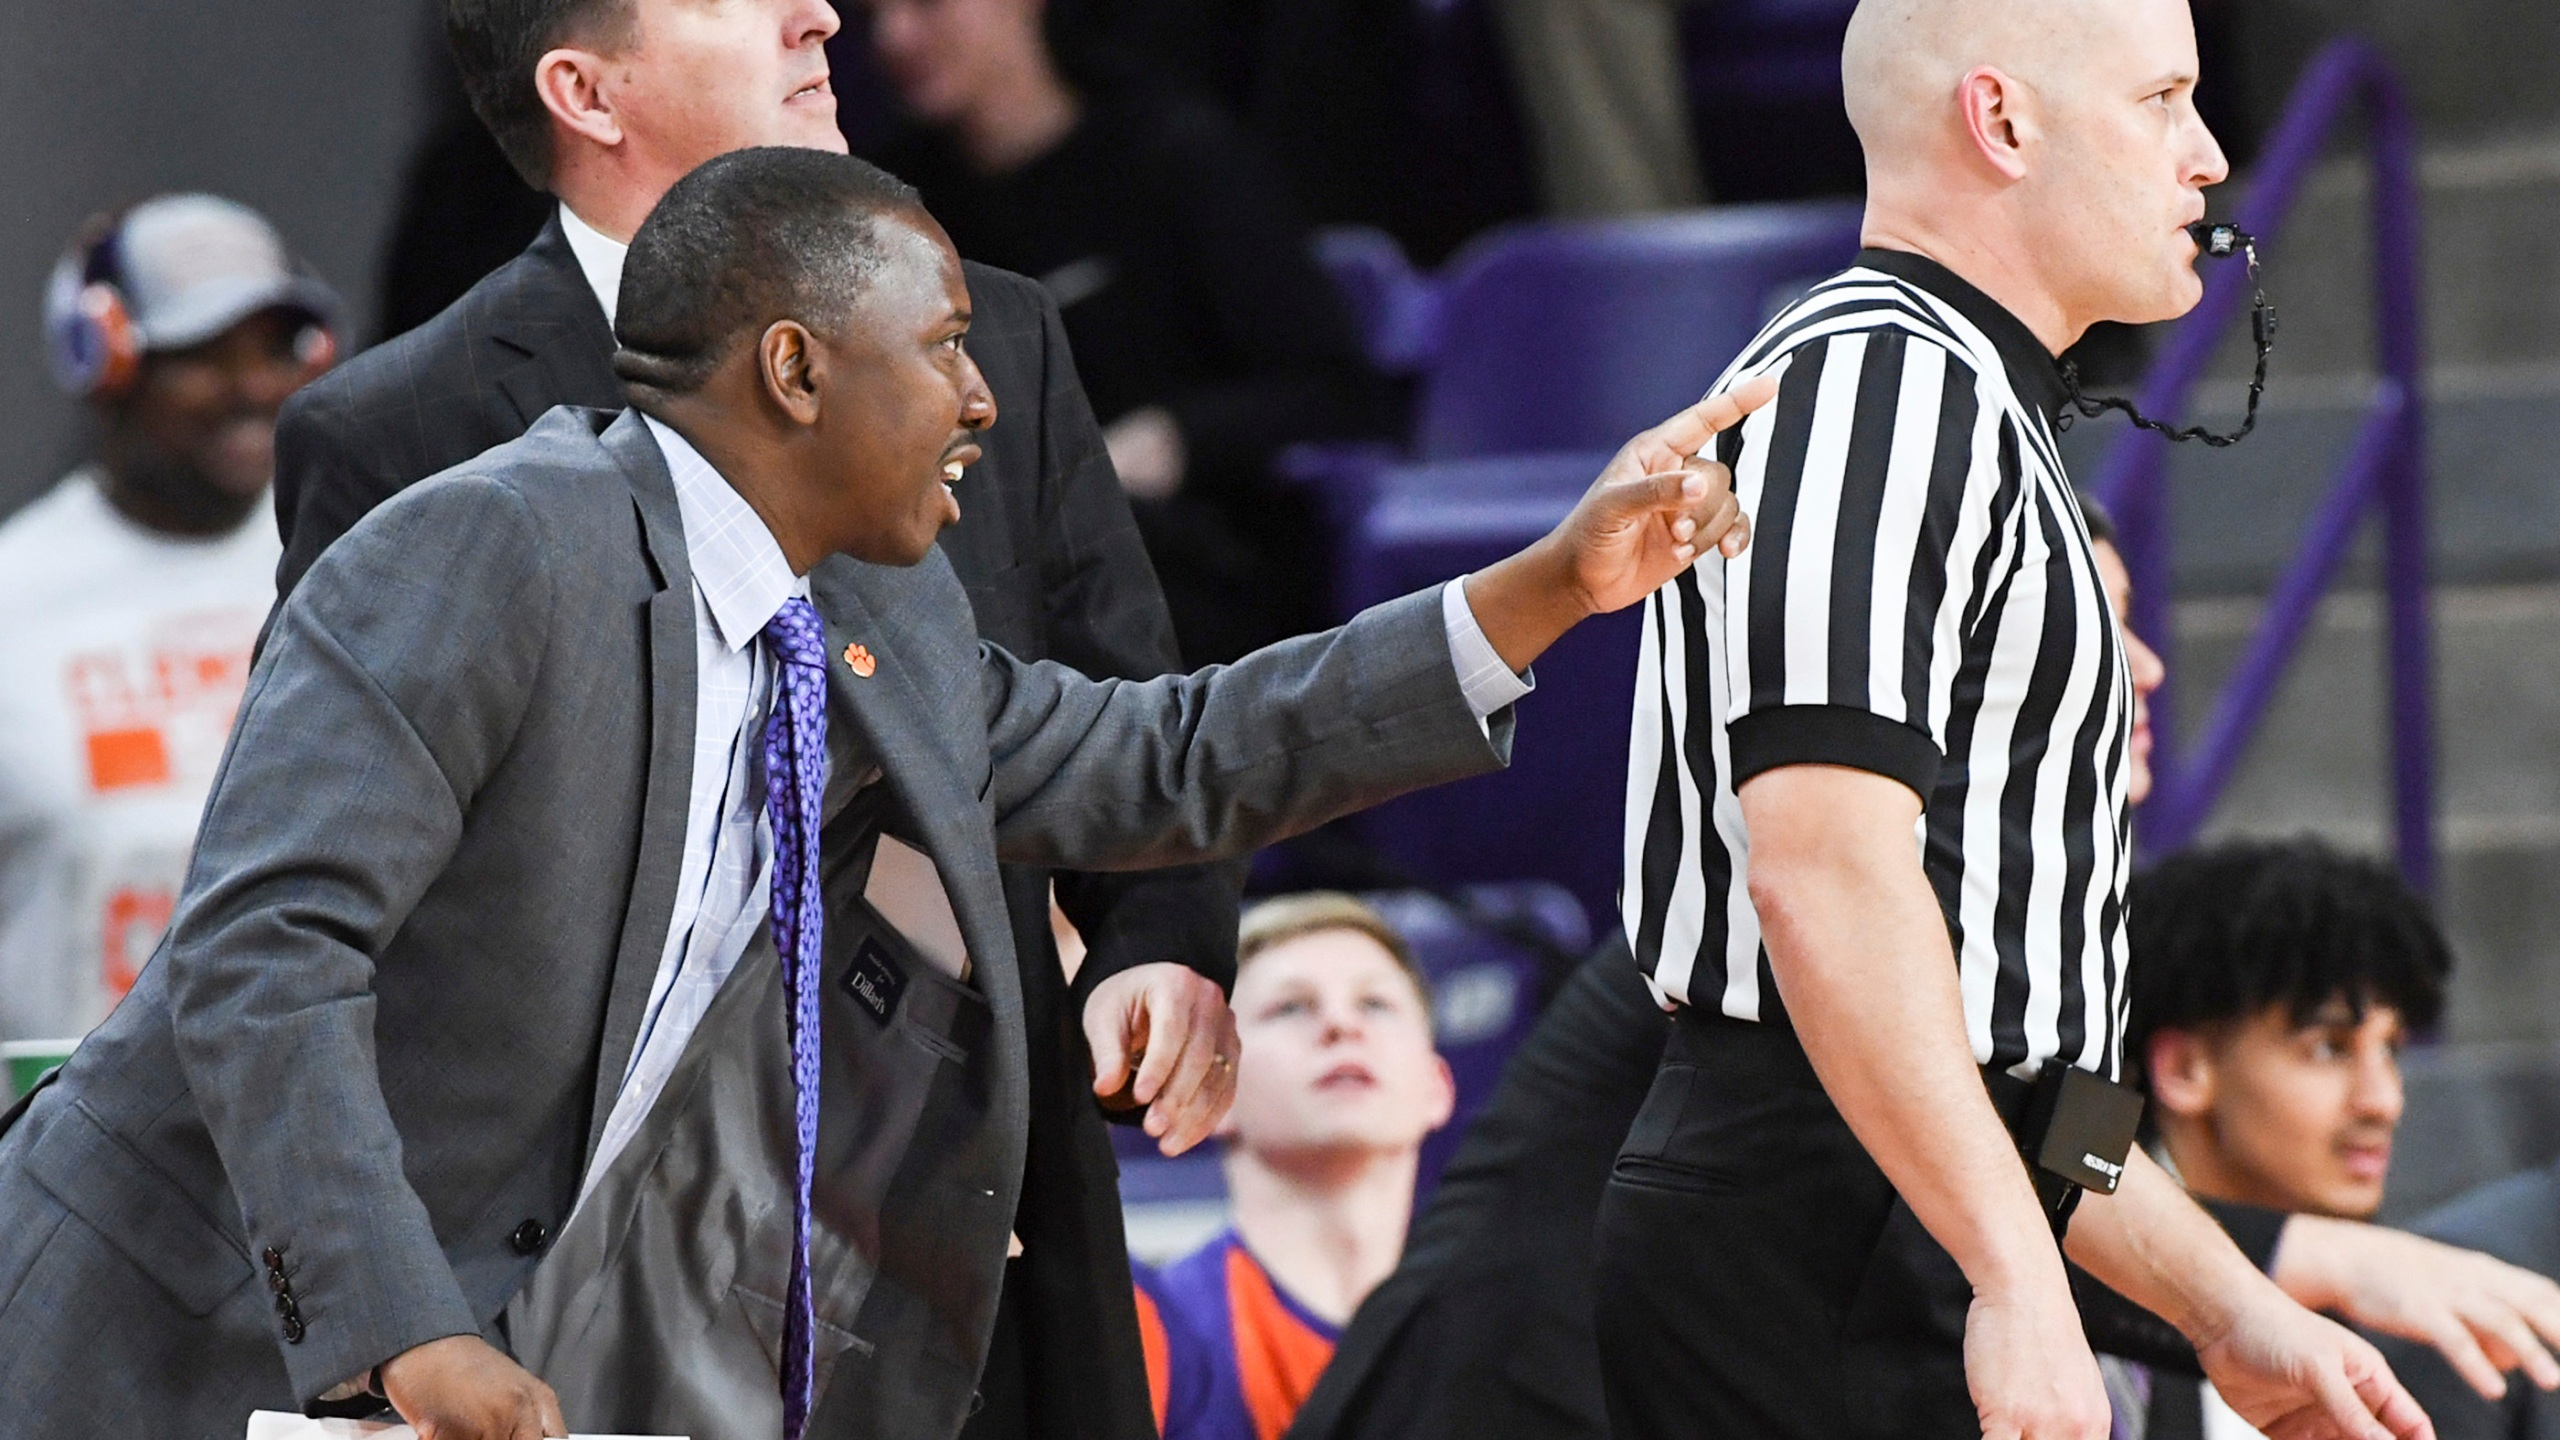 College_Corruption-Clemson_Basketball_47287-159532.jpg37087083